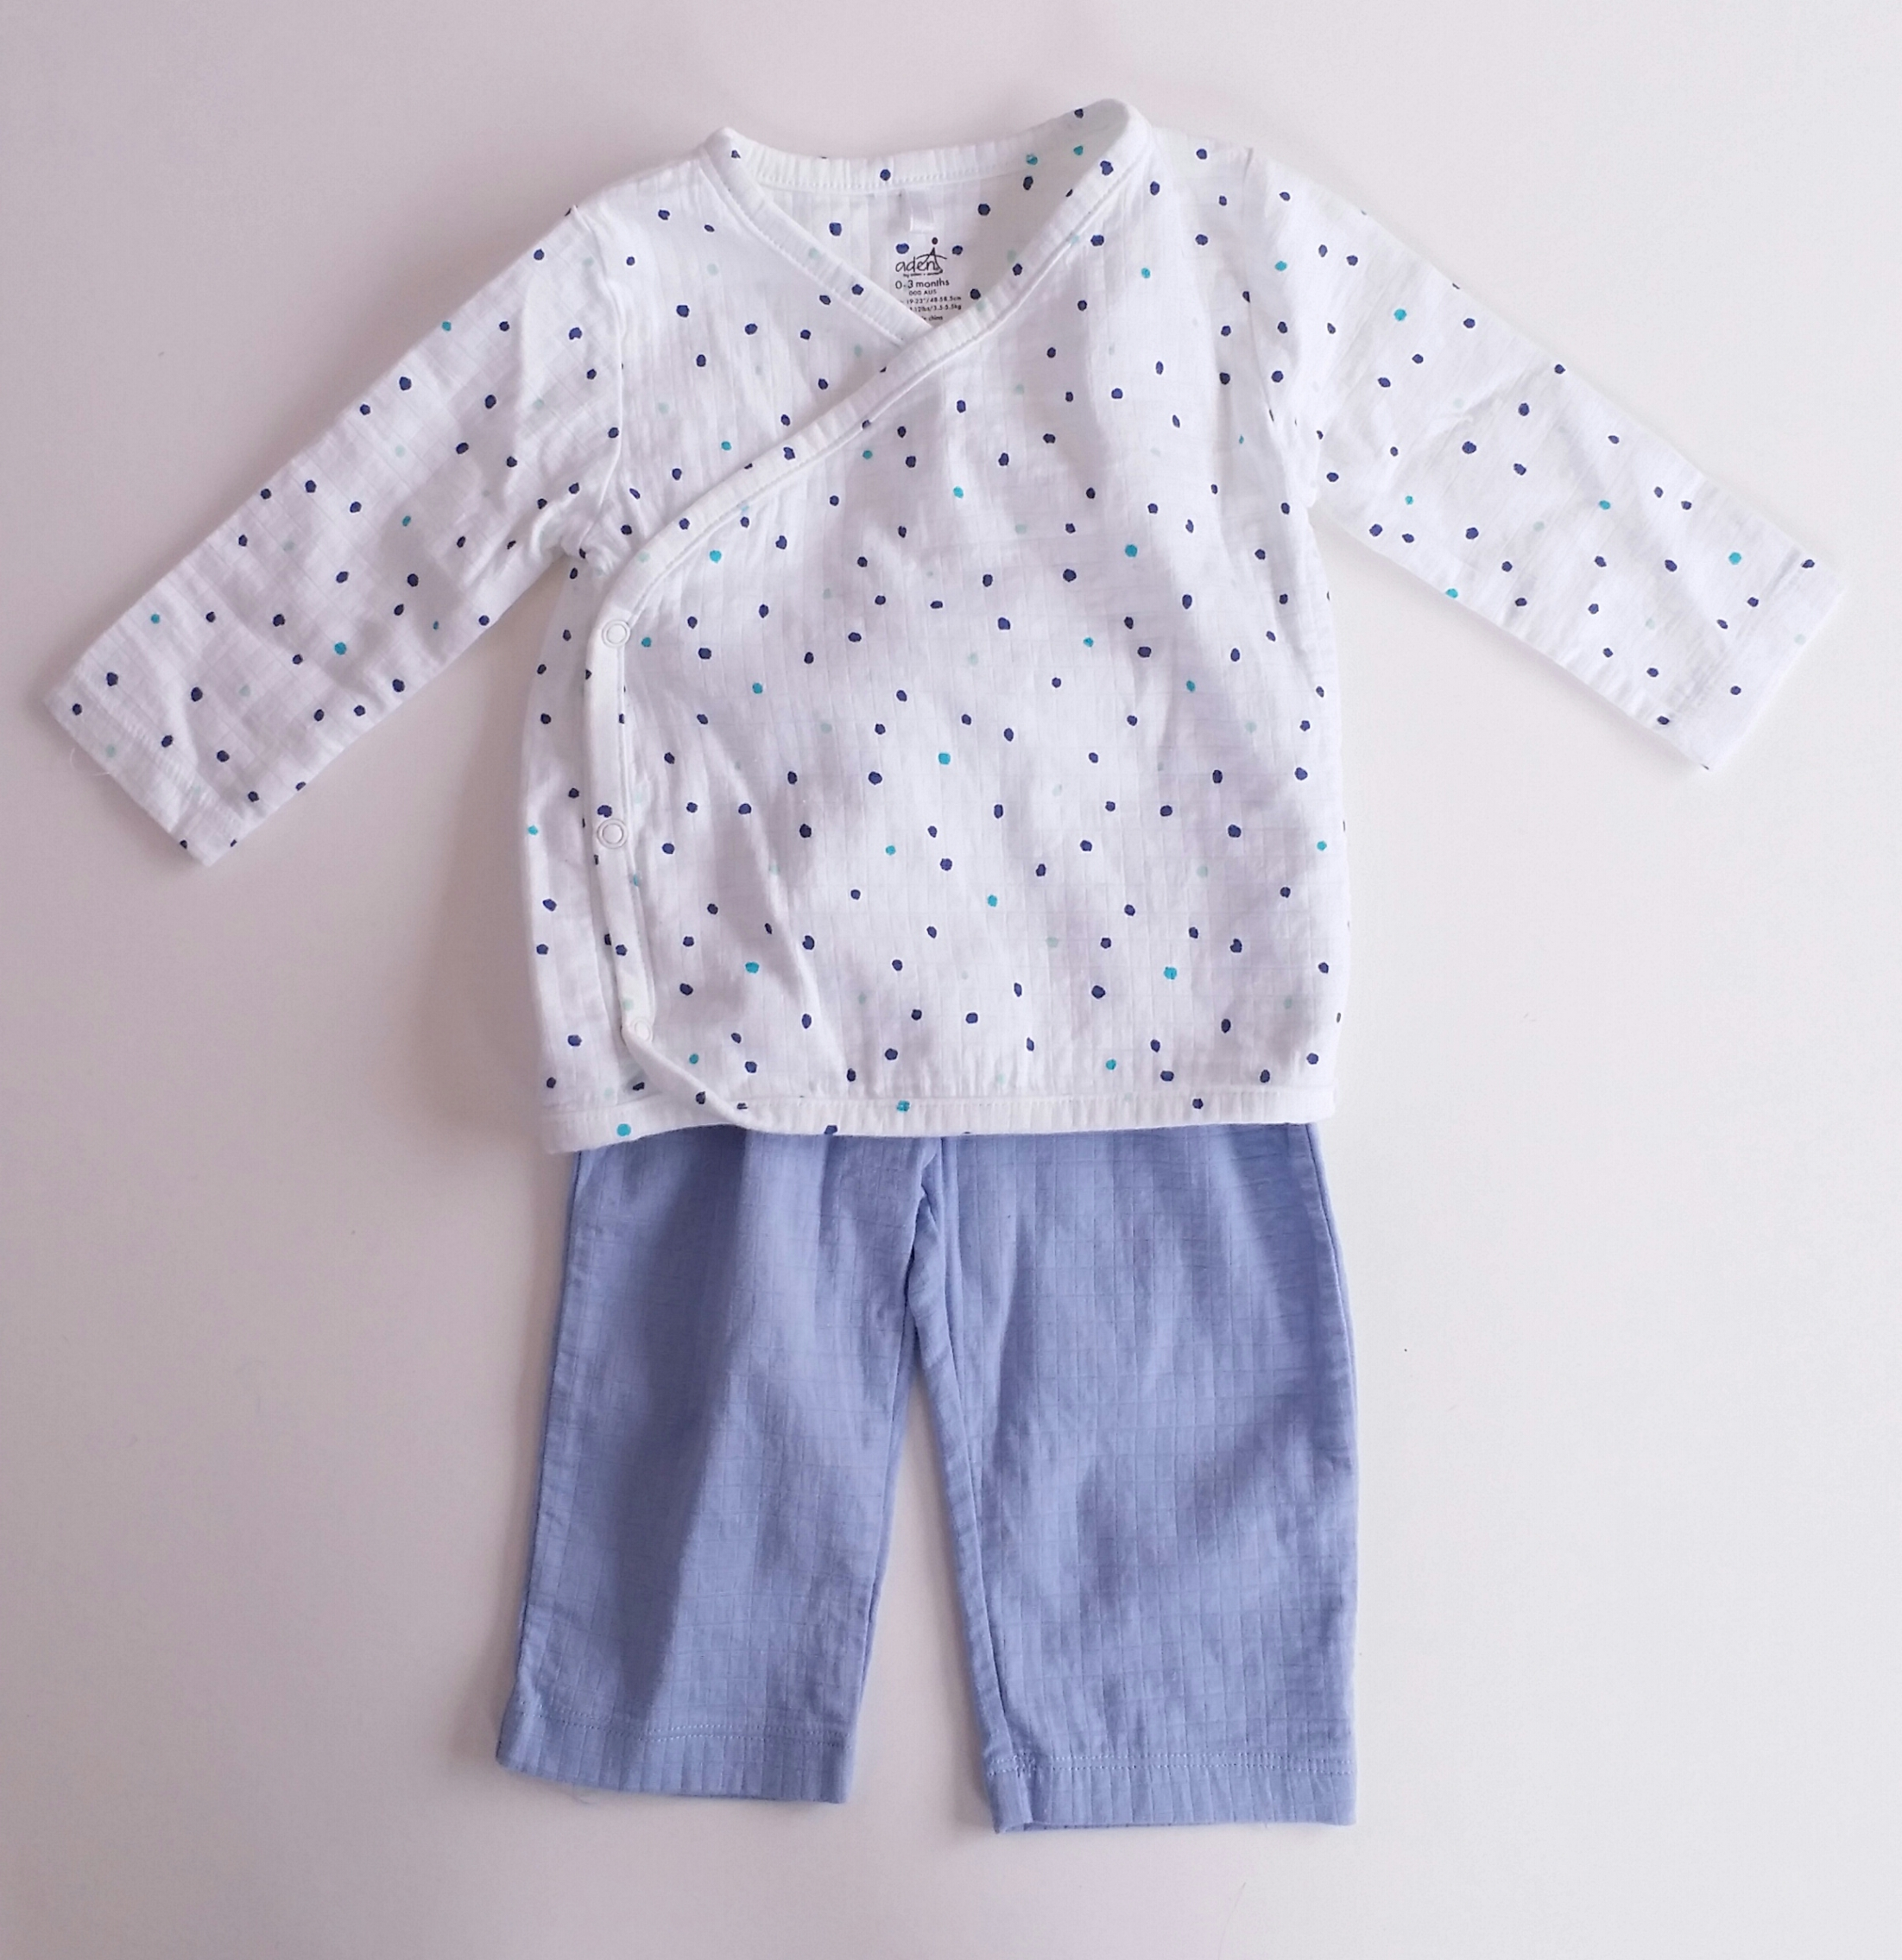 Aden-and-Anais--0-3-MONTHS-Polka-Dot-Outfit_2155019A.jpg